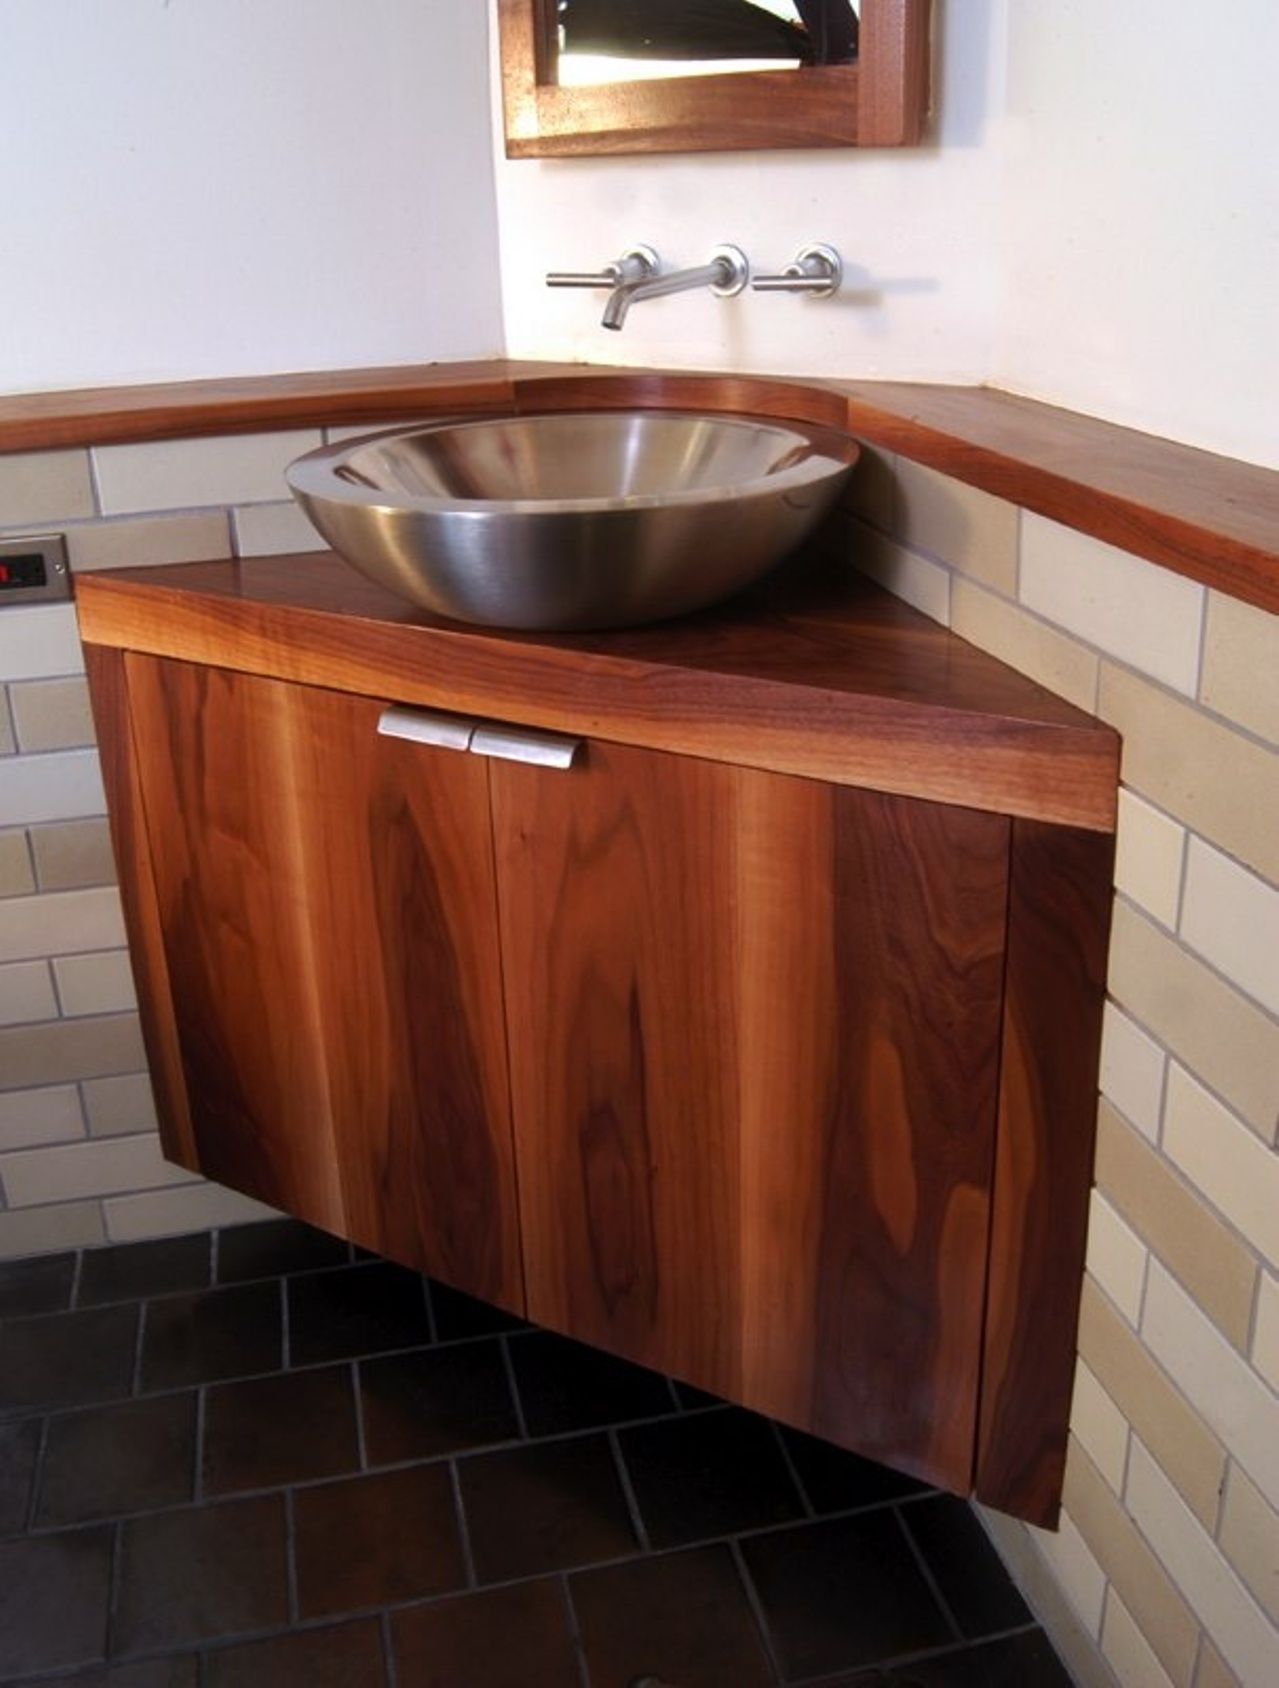 awesome brown wood corner bathroom vanity with silver vessel sink     awesome brown wood corner bathroom vanity with silver vessel sink and wall mounted faucet    Bathroom Remodel